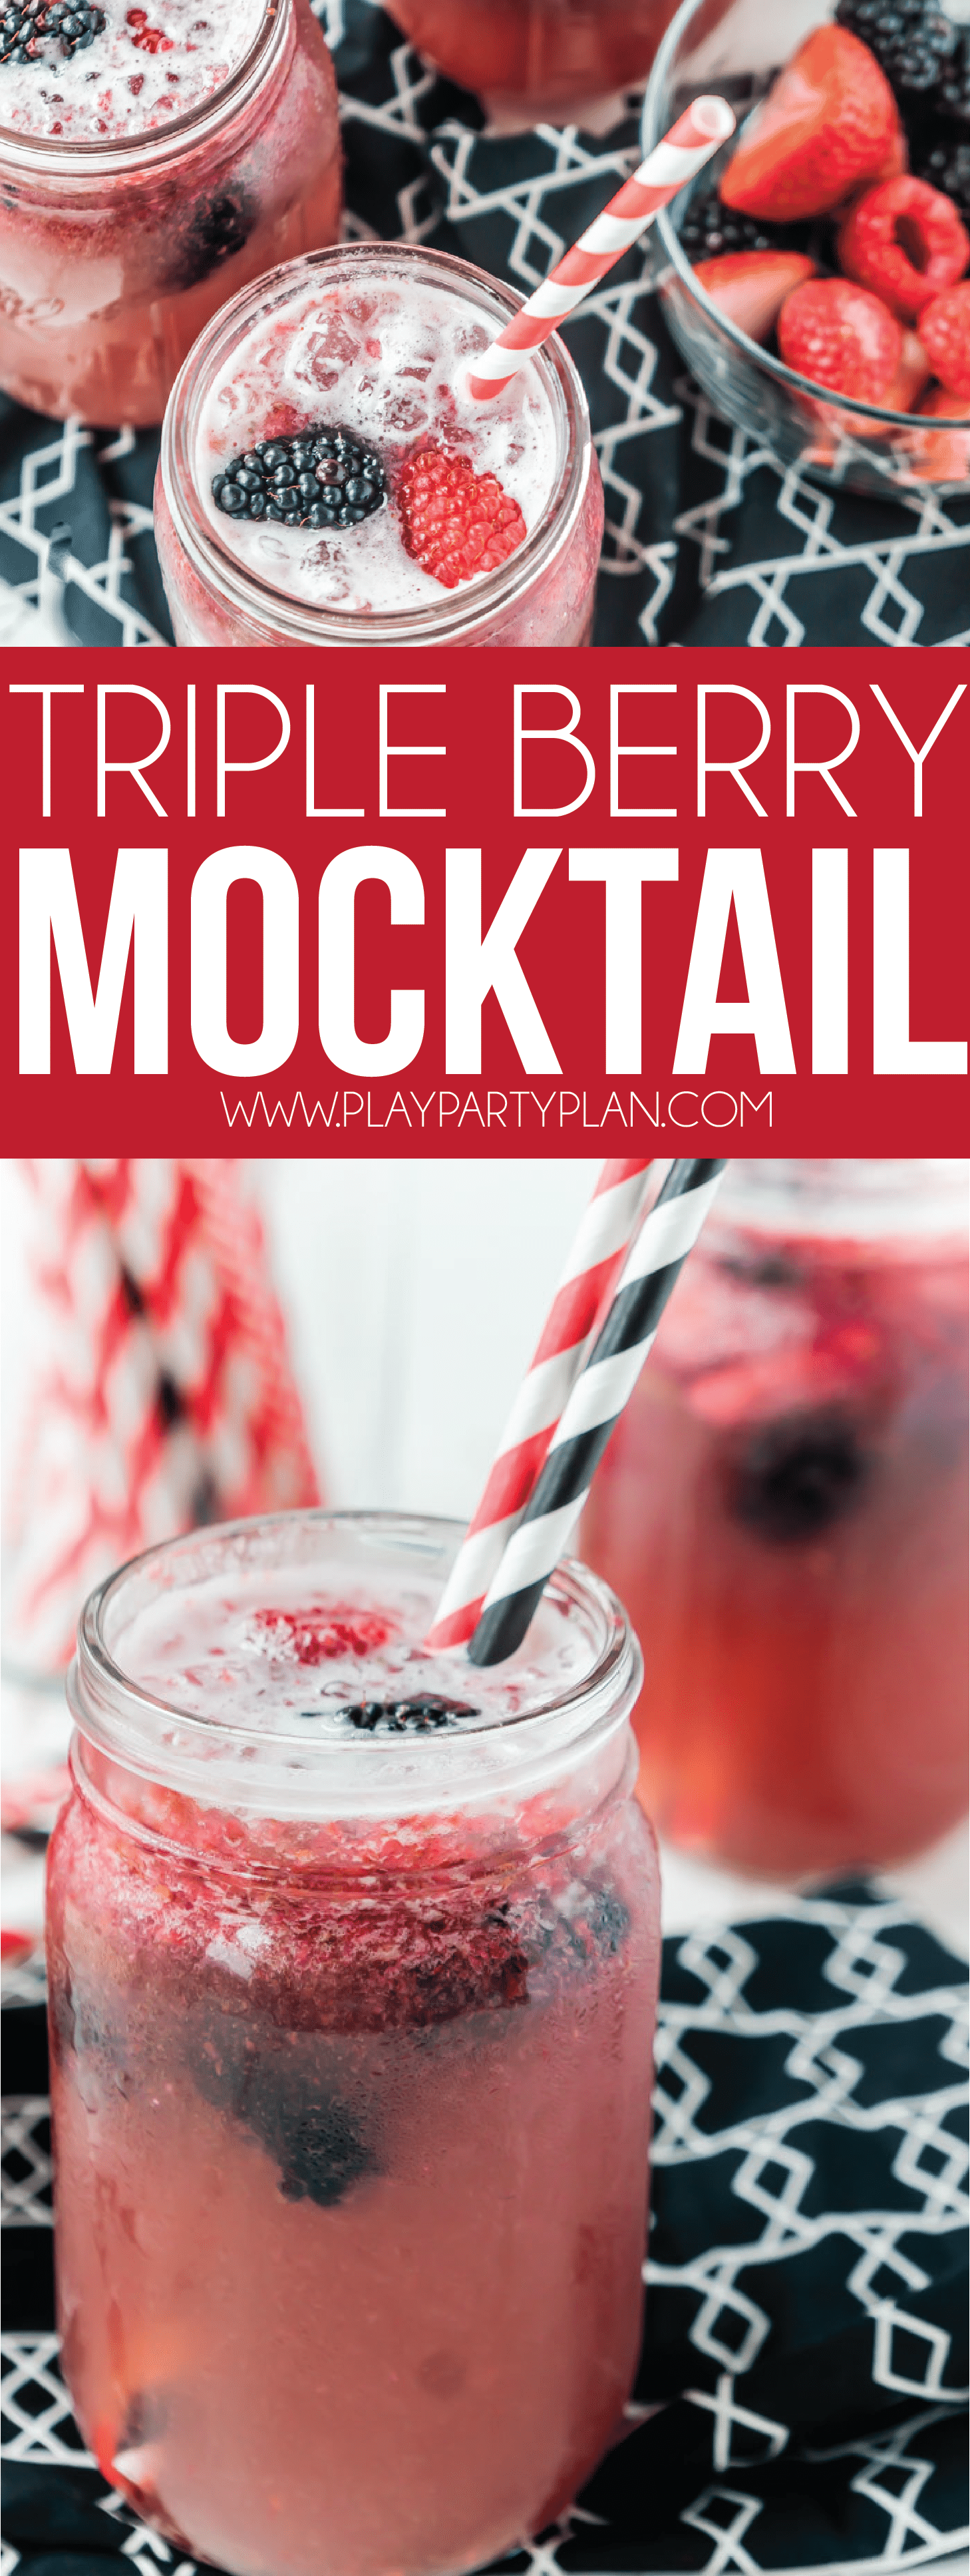 A non alcoholic triple berry mocktail recipe that's perfect for pregnancy, for teens, or for the summer! Easy to make and a delicious recipe for your next party!